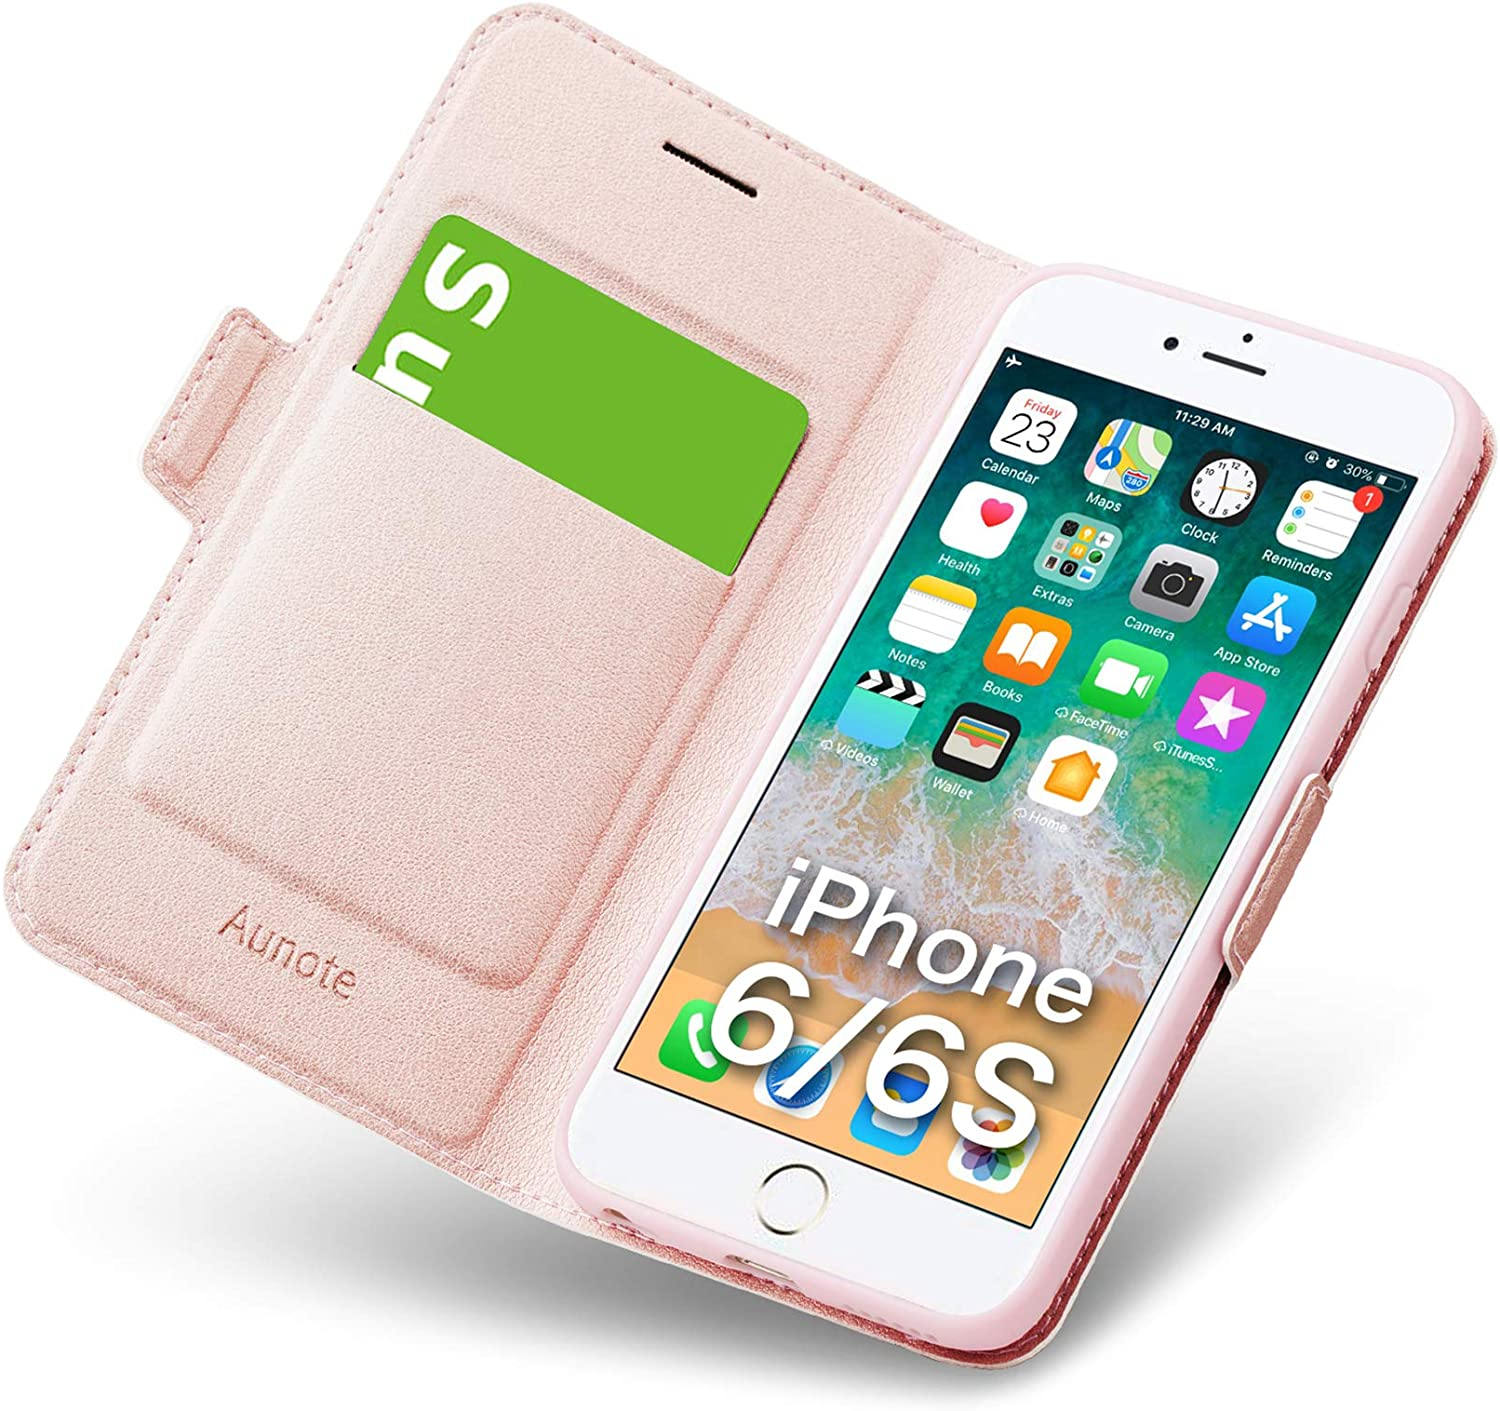 Aunote iPhone 6 Wallet Case, iPhone 6s Flip Case with Card Slot, Magnetic Closure and Kickstand, Soft TPU+Slim PU Leather Folio Phone Cover Full Protection for Apple iPhone 6/6s. Rose Gold